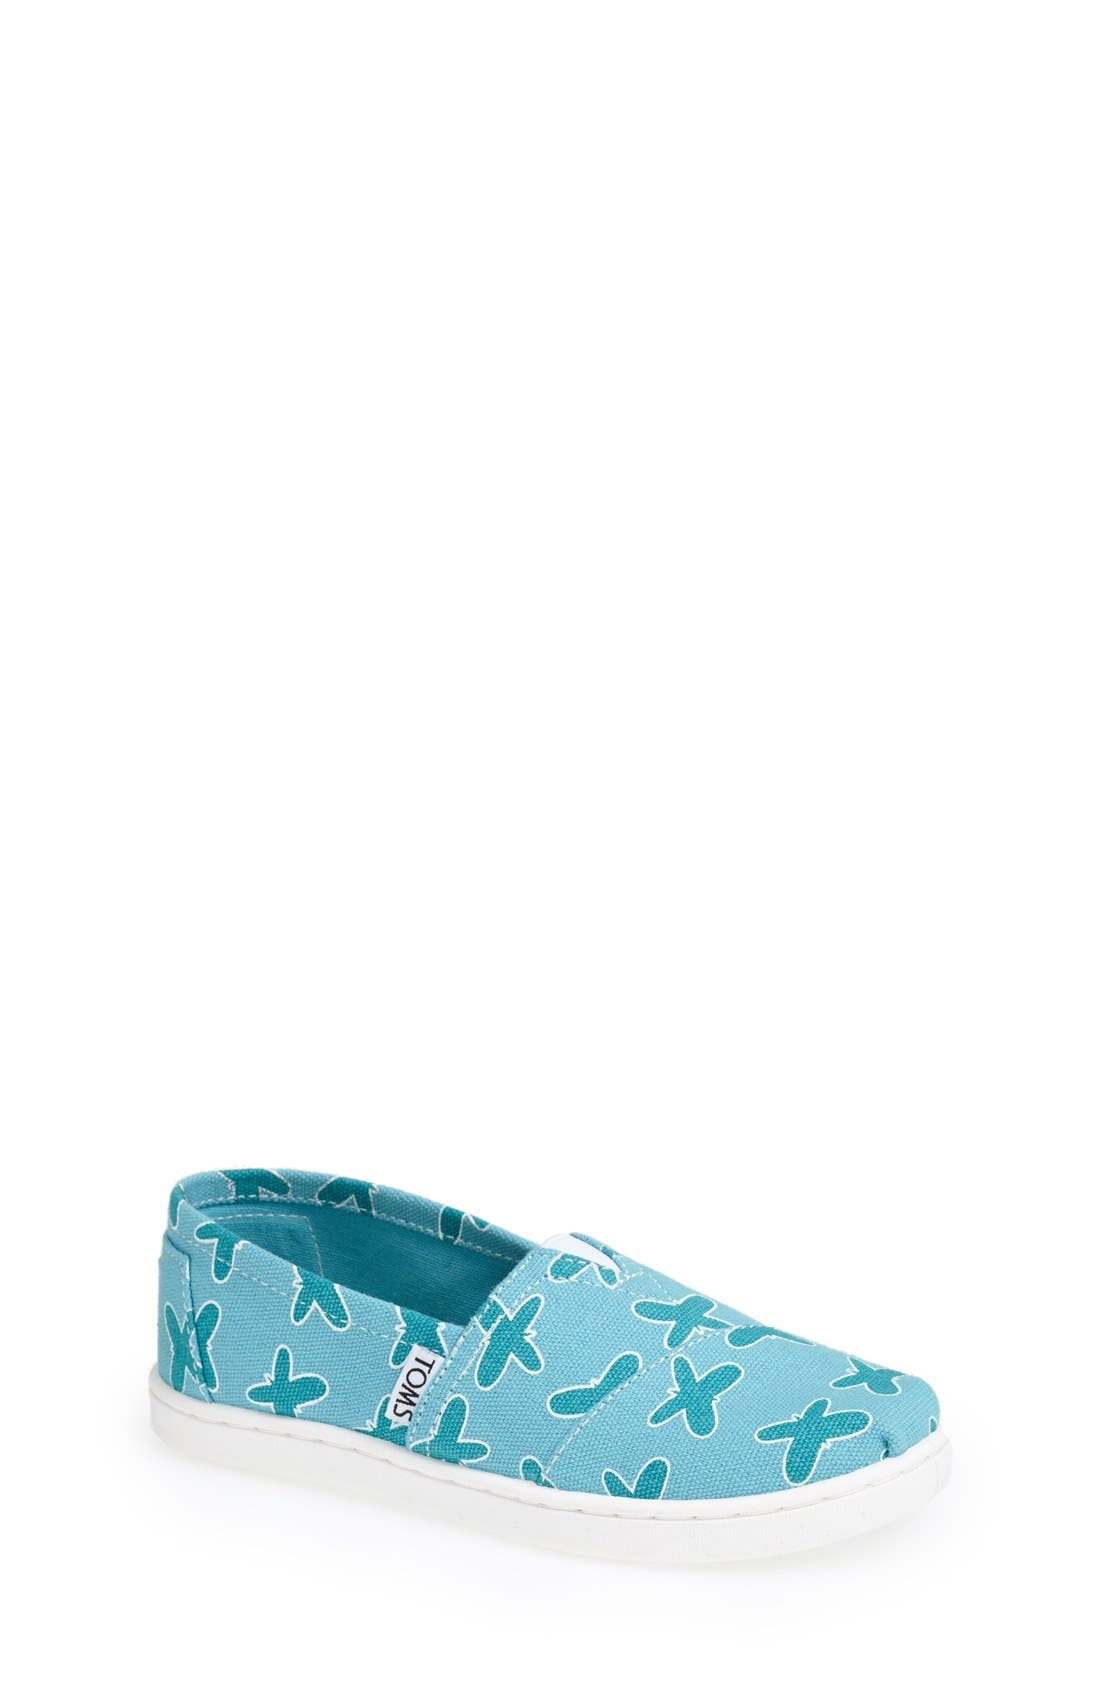 Alternate Image 1 Selected - TOMS 'Classic Youth - Butterfly' Slip-On (Toddler, Little Kid & Big Kid)